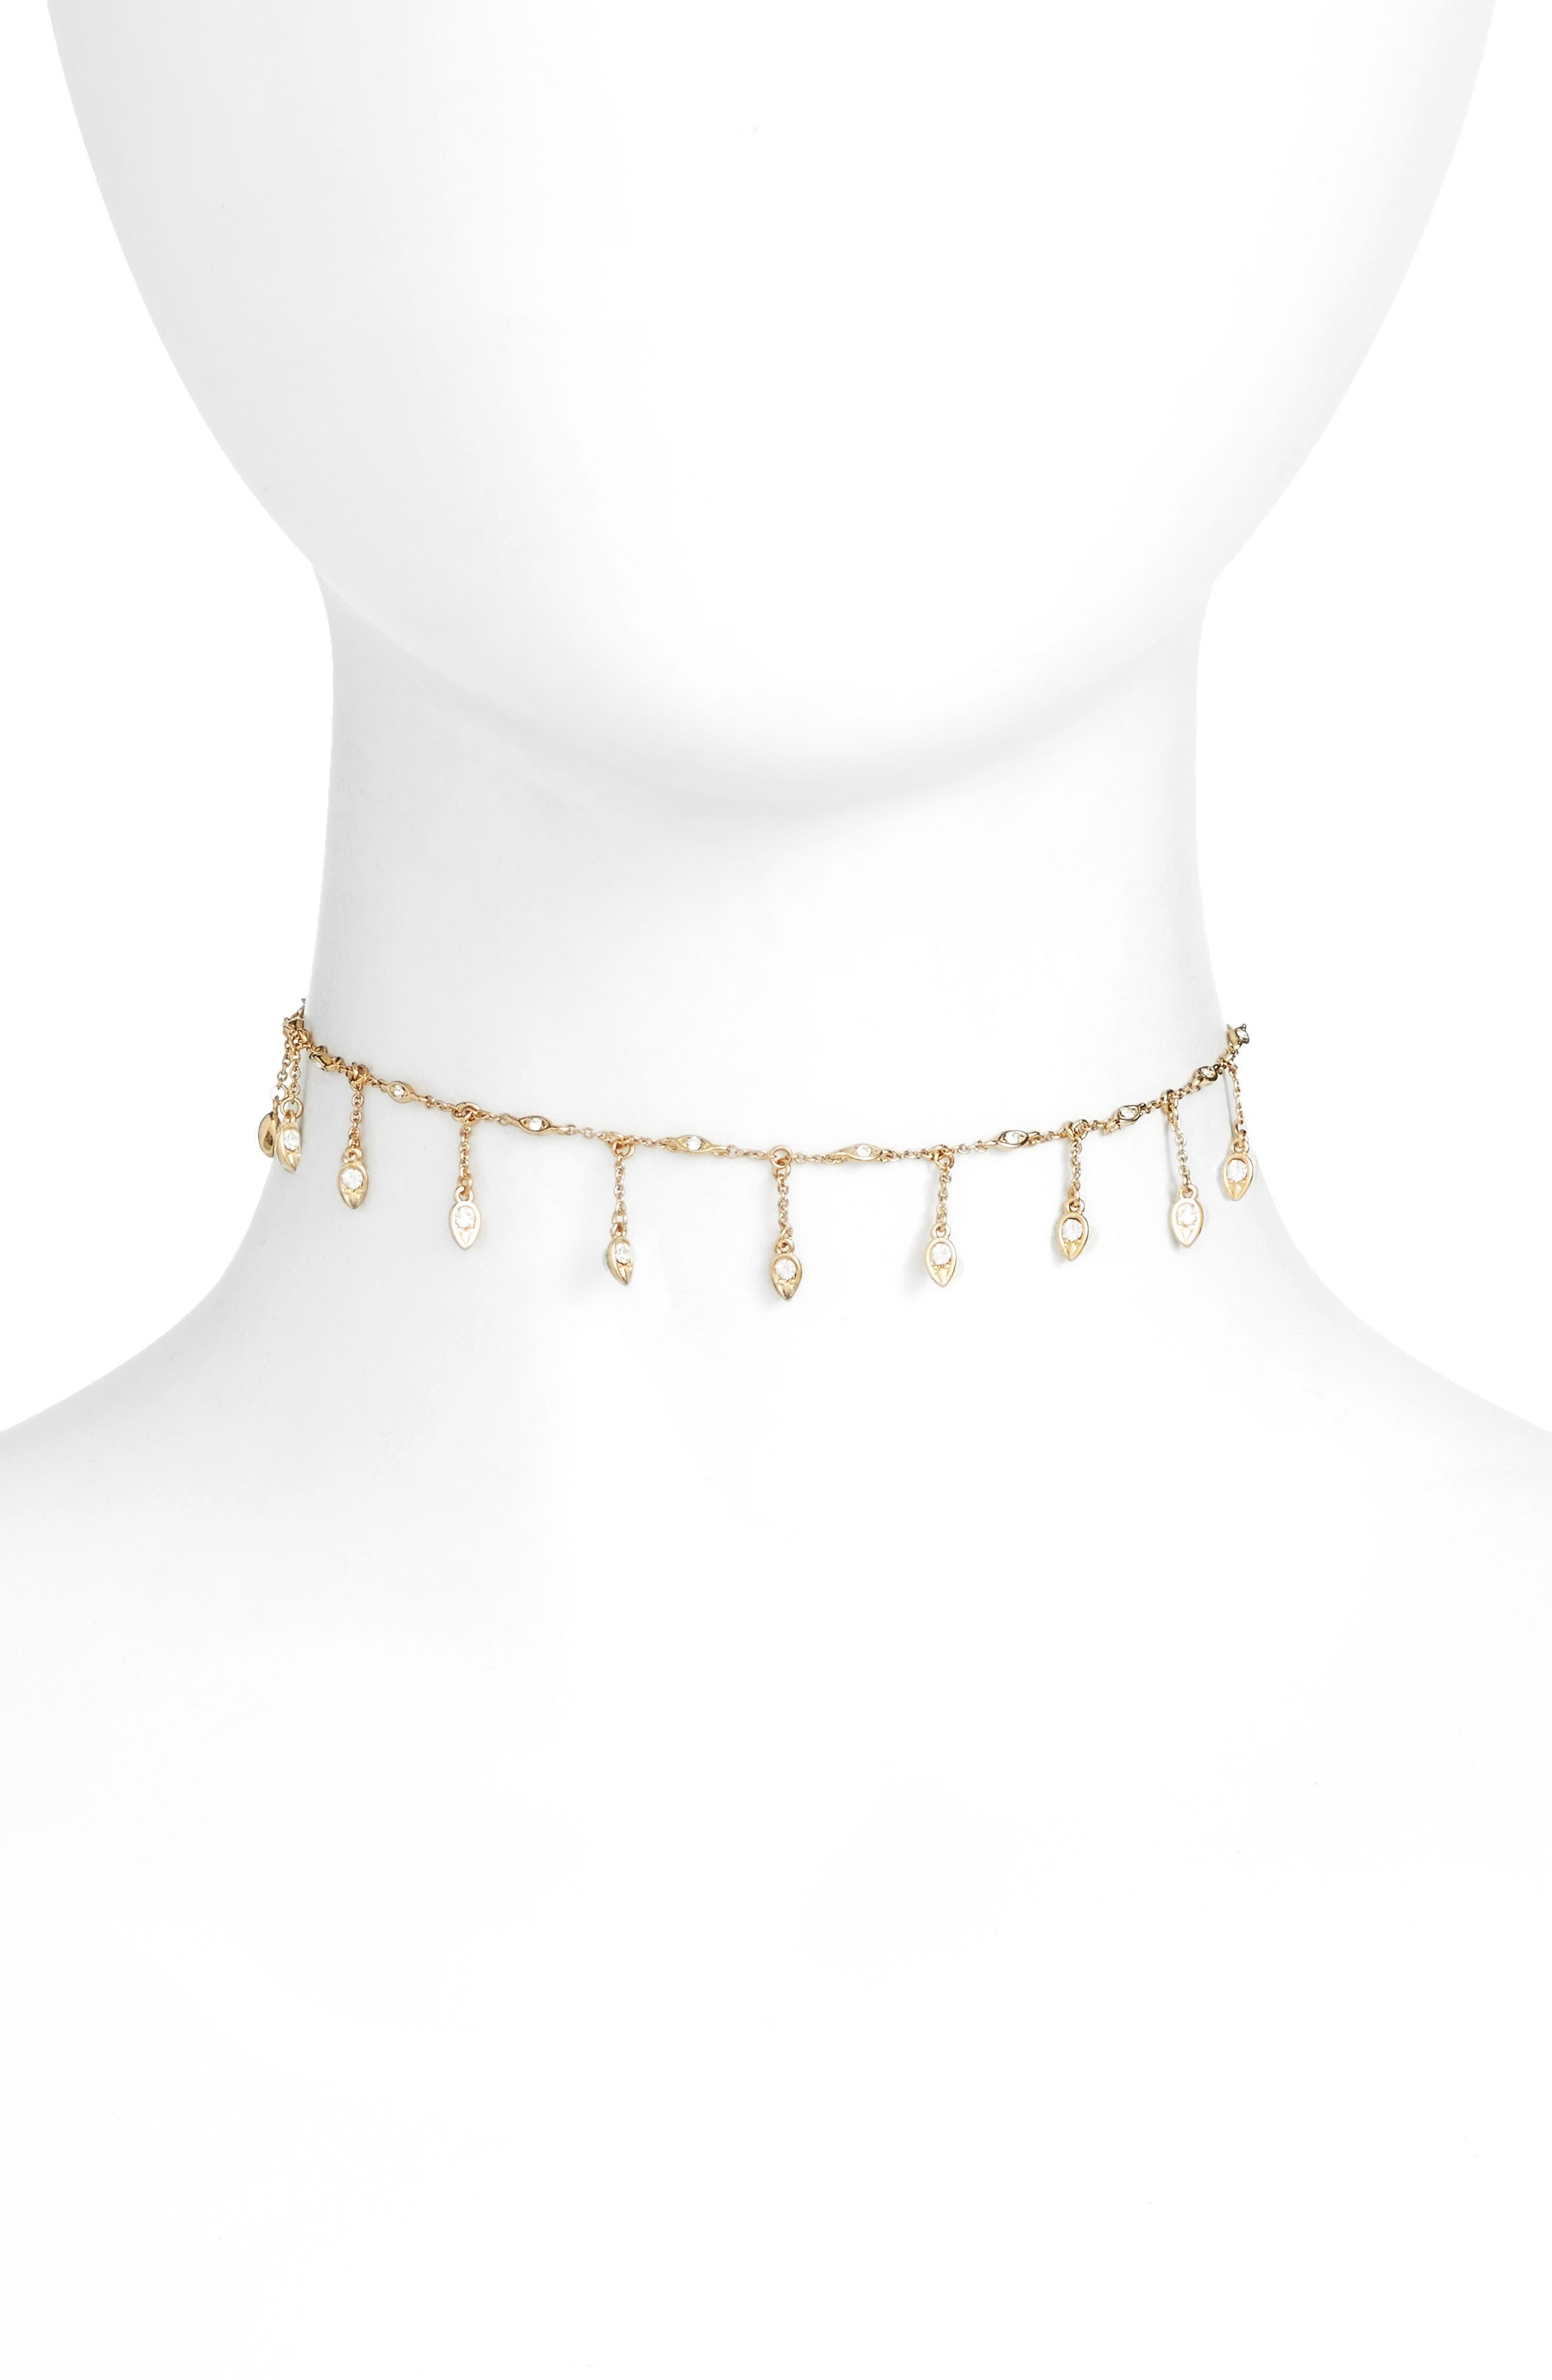 Revel Starburst Choker Necklace,                             Main thumbnail 1, color,                             Gold